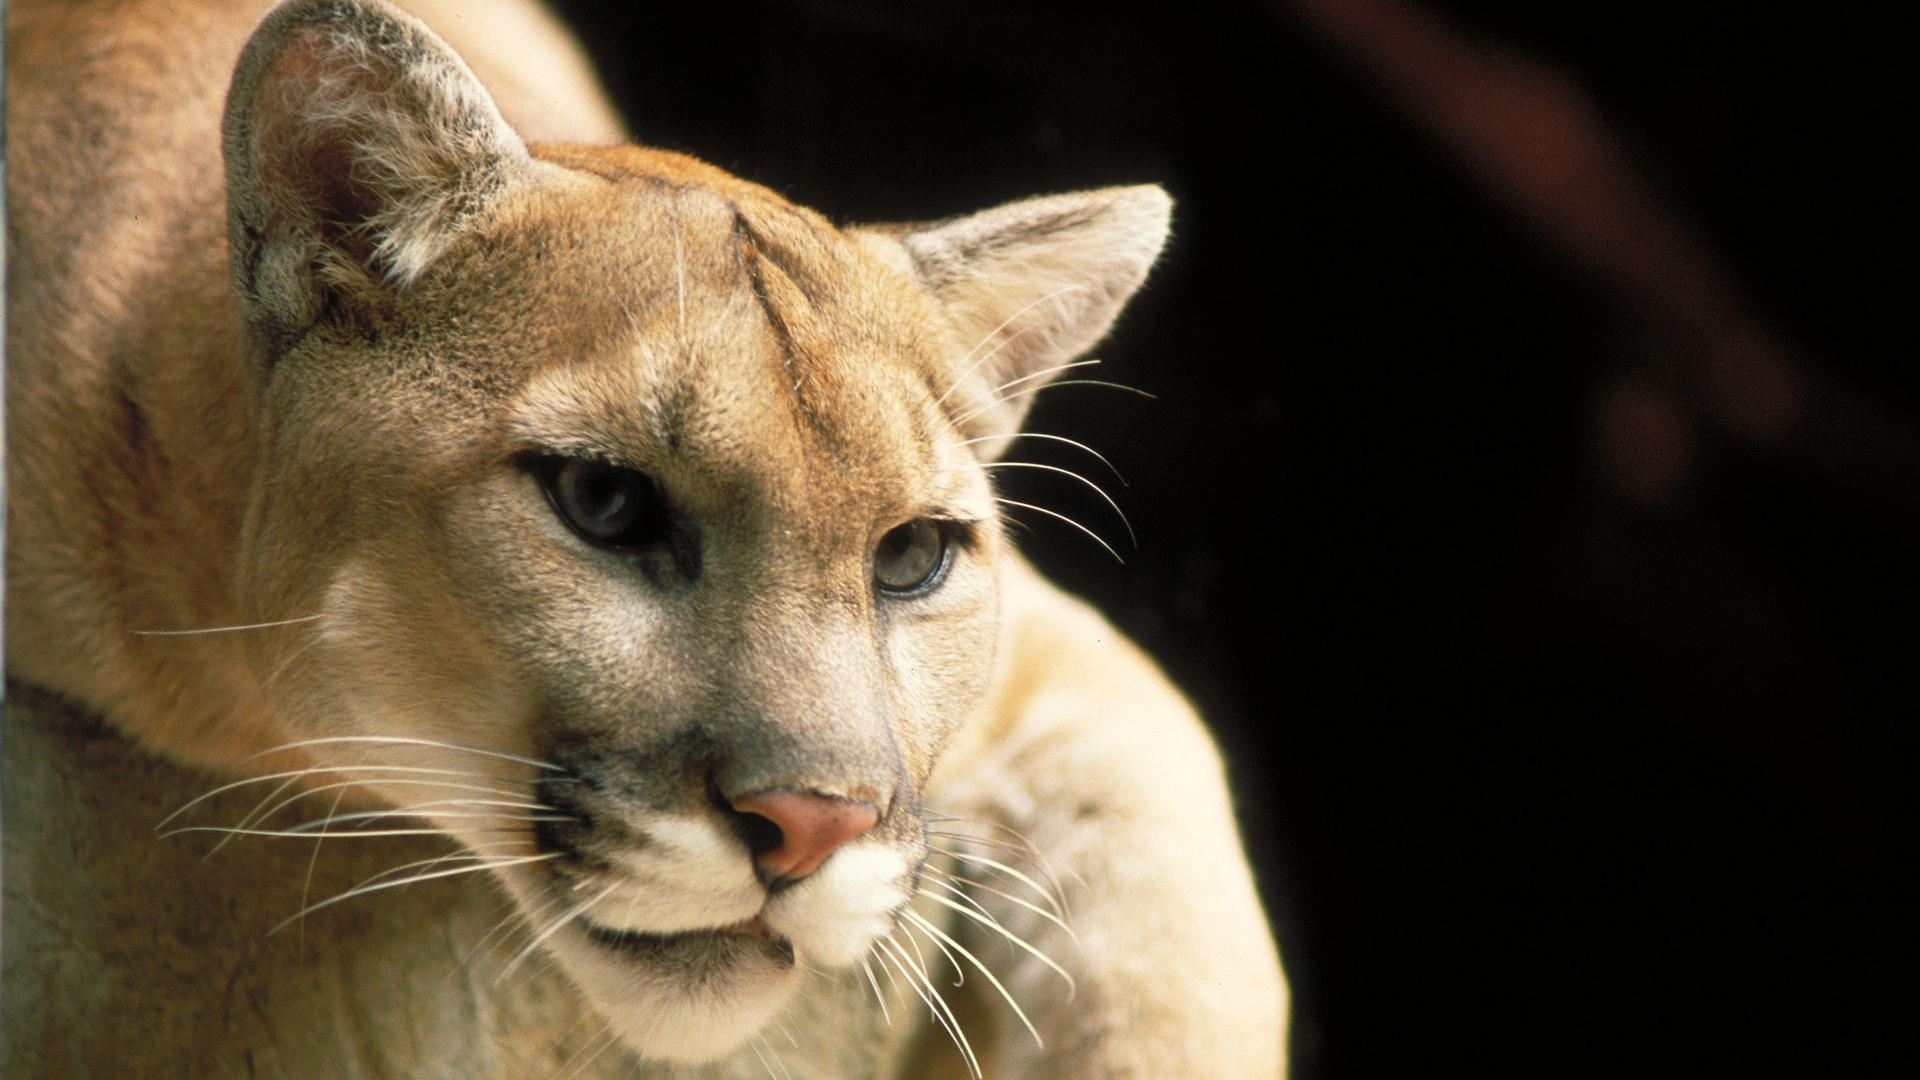 Cougar Hd Wallpaper Background Image 1920x1080 Id 362951